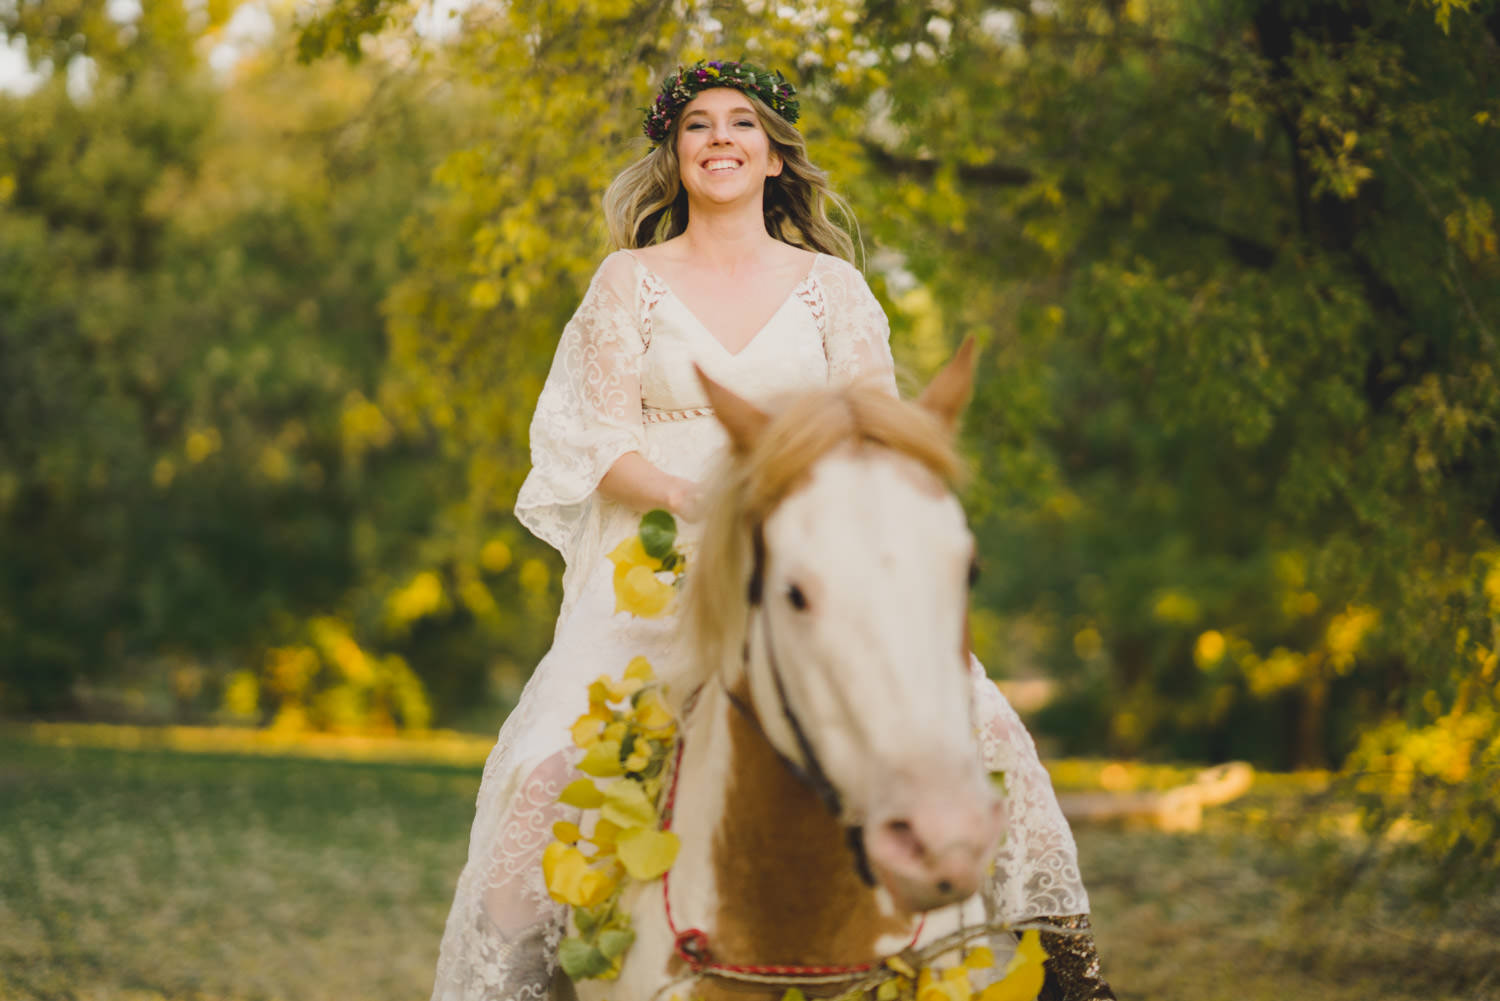 Equestrian bridal session bride smiling on horse with yellow flowers photo